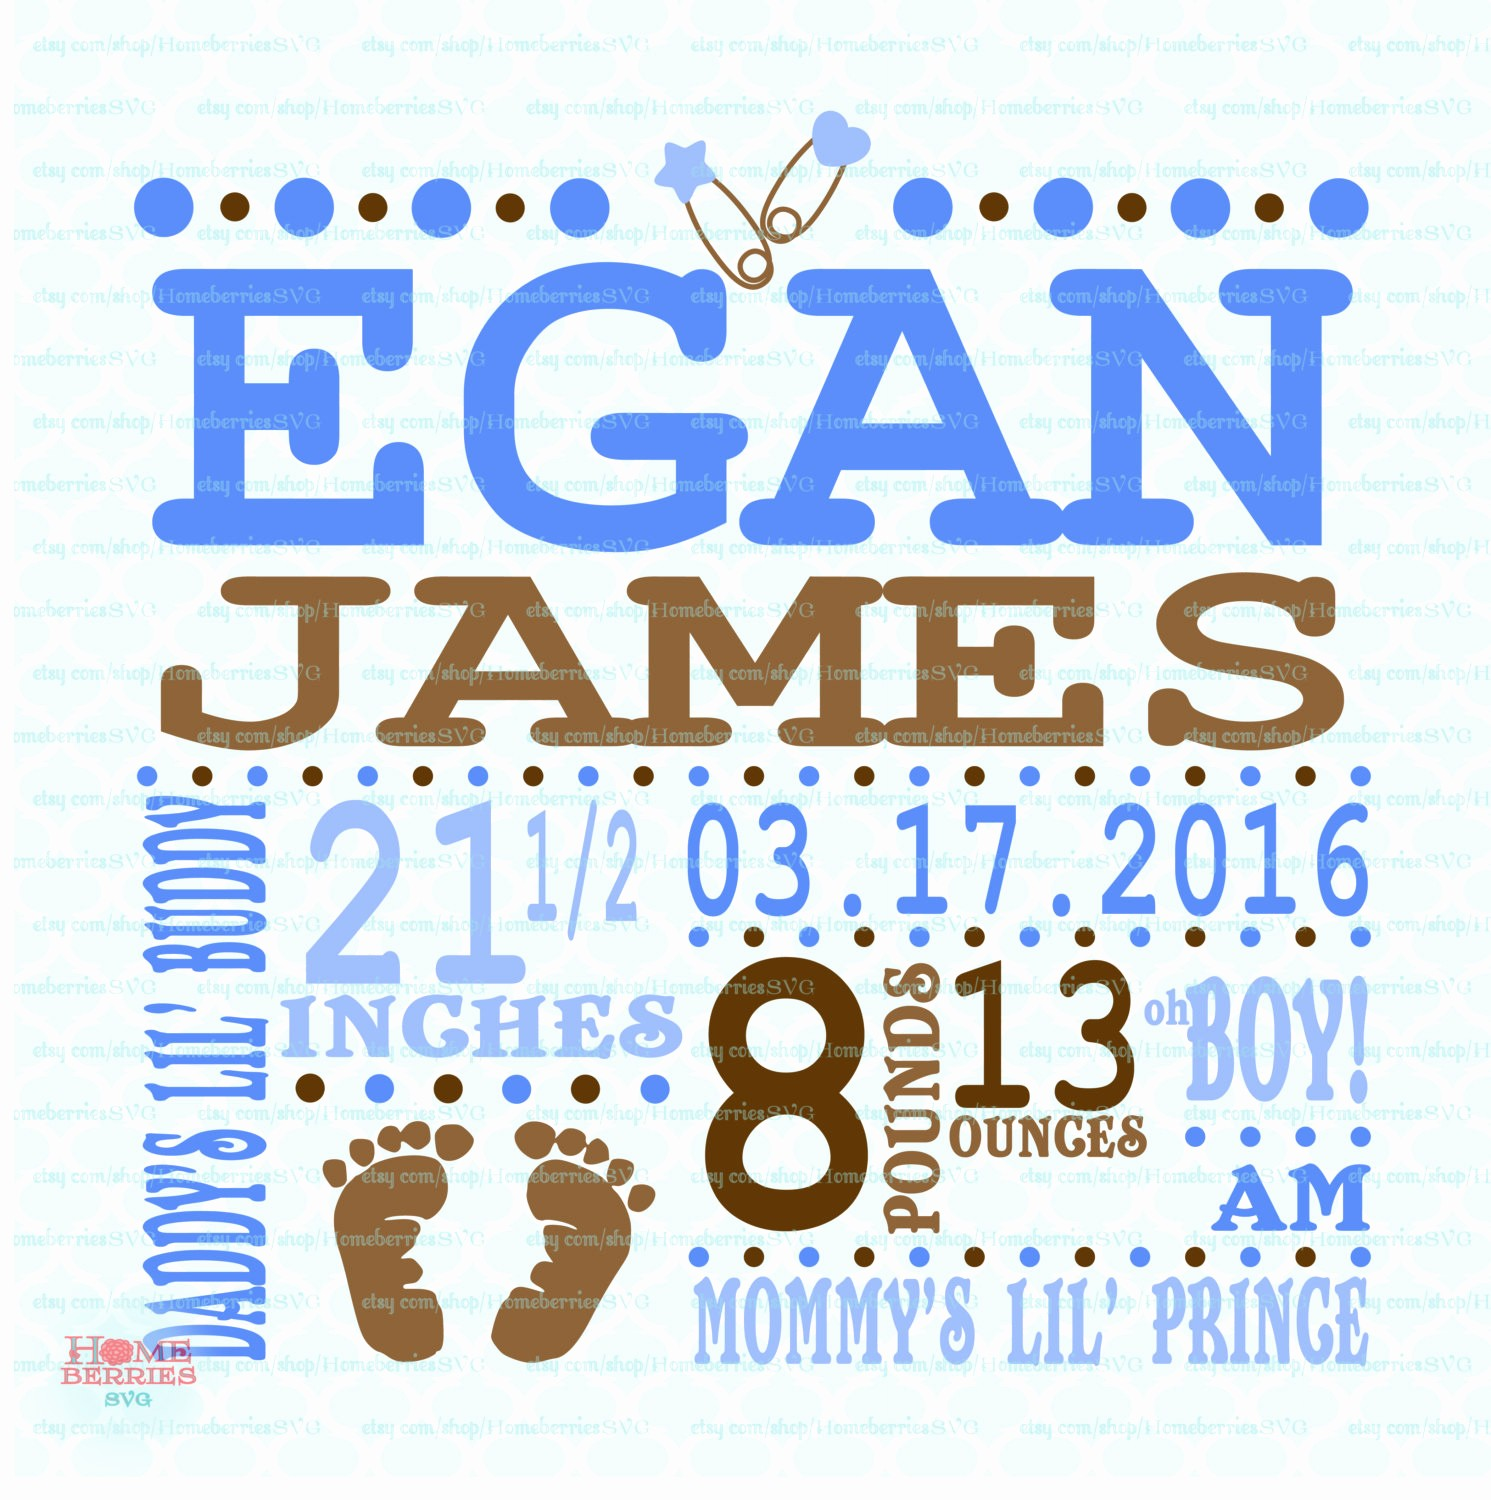 Baby Boy Birth Announcement Template Elegant Birth Announcement Png Transparent Birth Announcement Png